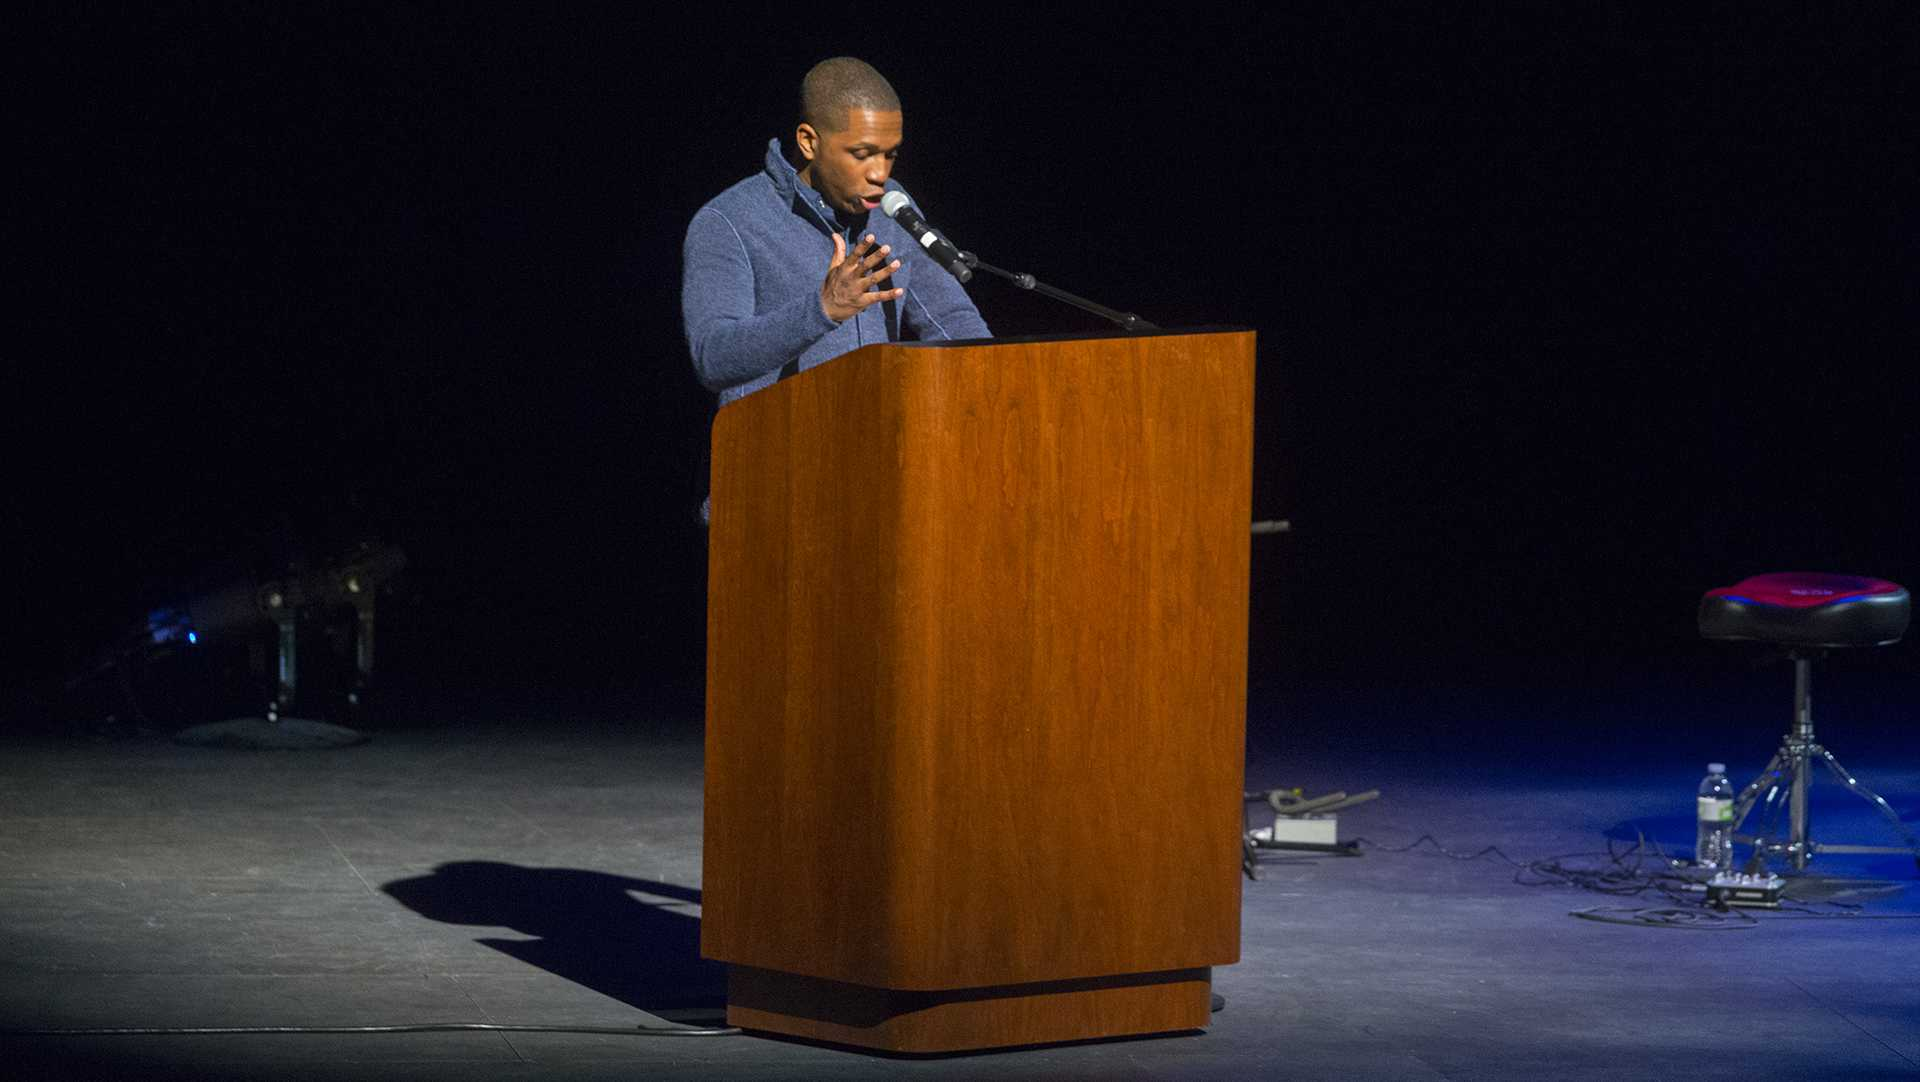 FILE - Leslie Odom Jr. speaks in collaboration with the UI Lecture Committee at Hancher Auditorium on Monday, Mar 27, 2017. Odom Jr. gained recognition and a 2015 Grammy Award and Tony Award for Best Actor for his work in the musical Hamilton. (The Daily Iowan/Lily Smith)